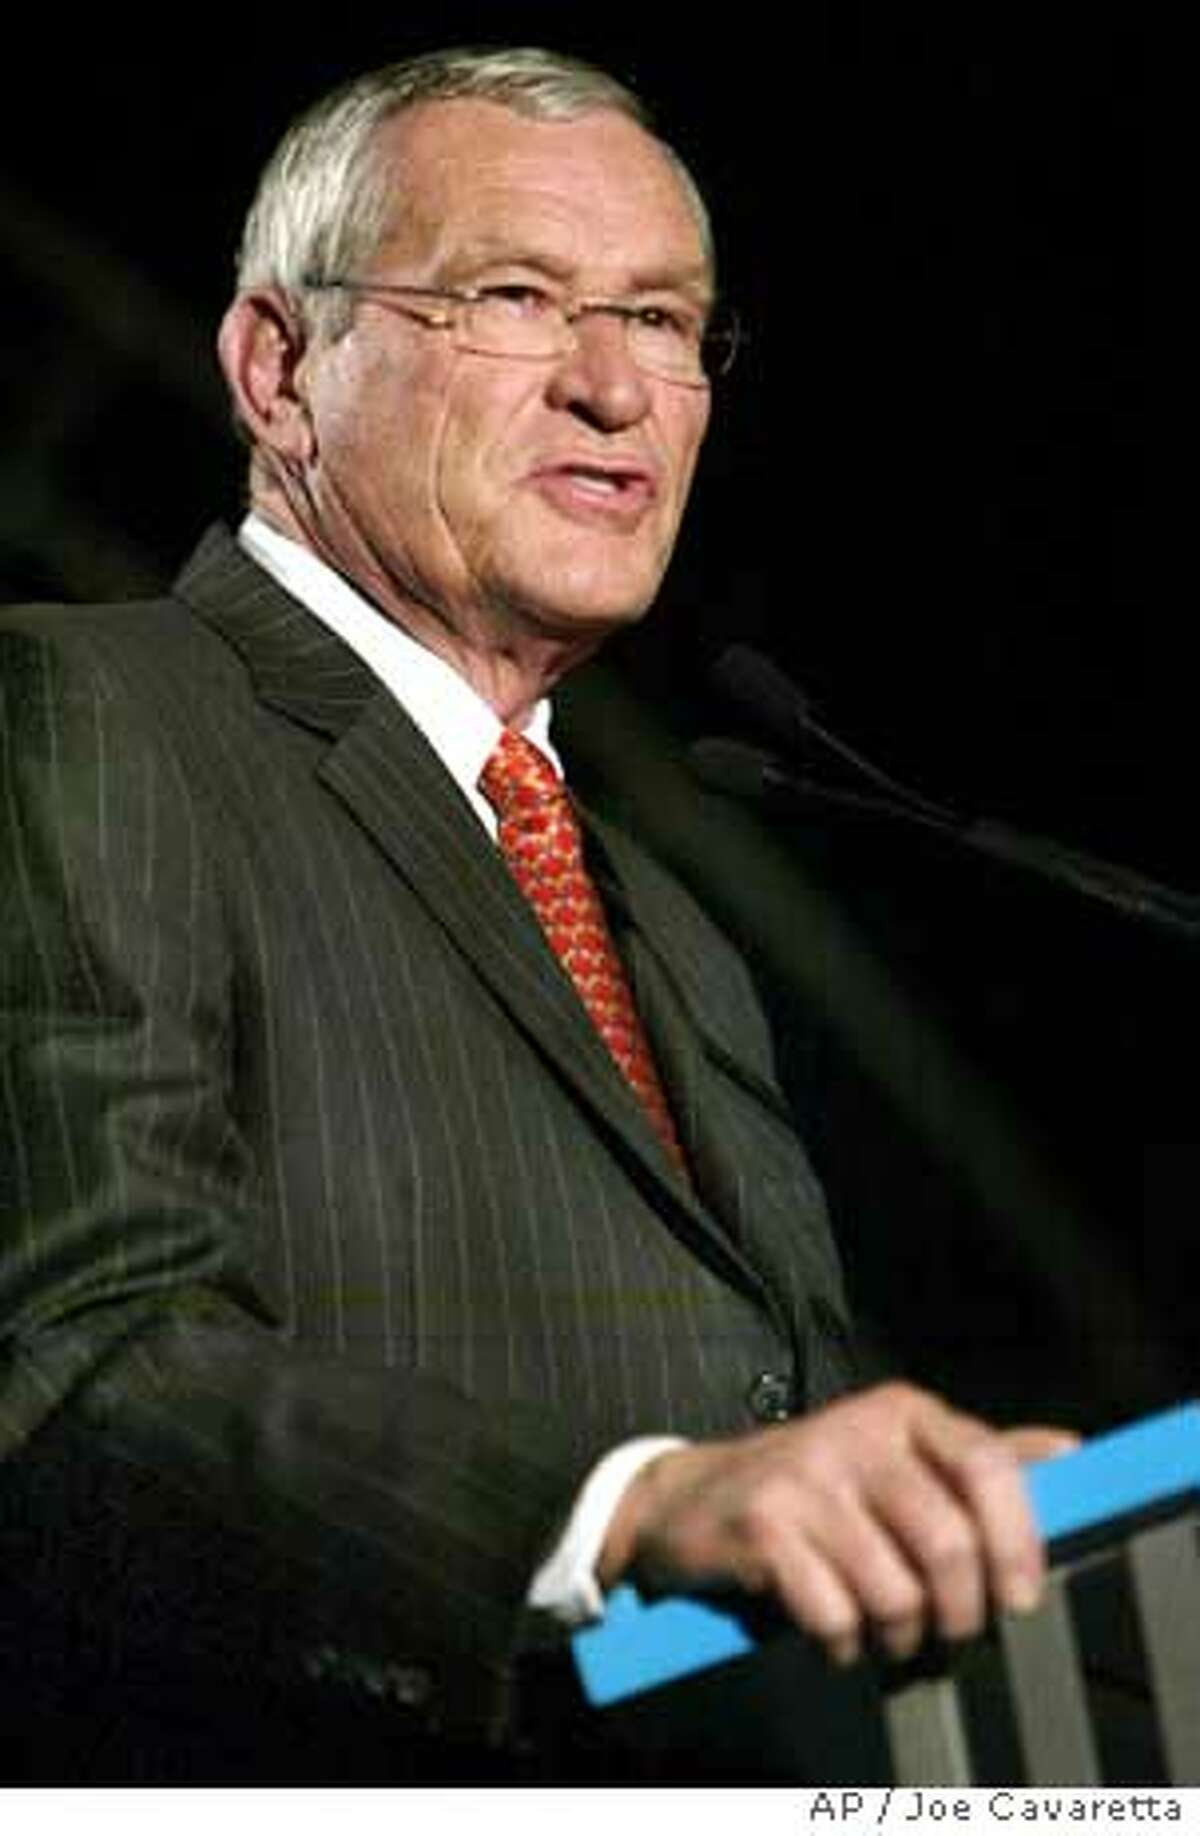 Ed , CEO of SBC address the Consumer Electronics Show Thursday, Jan. 6, 2005 at the Las Vegas Hilton. SBC Communications Inc., the nation's second largest local phone service provider, said Wednesday, Jan. 26, 2005, its earnings fell 16.7 percent in the fourth quarter and that it plans to cut 7,000 jobs this year in a bid to cut costs.